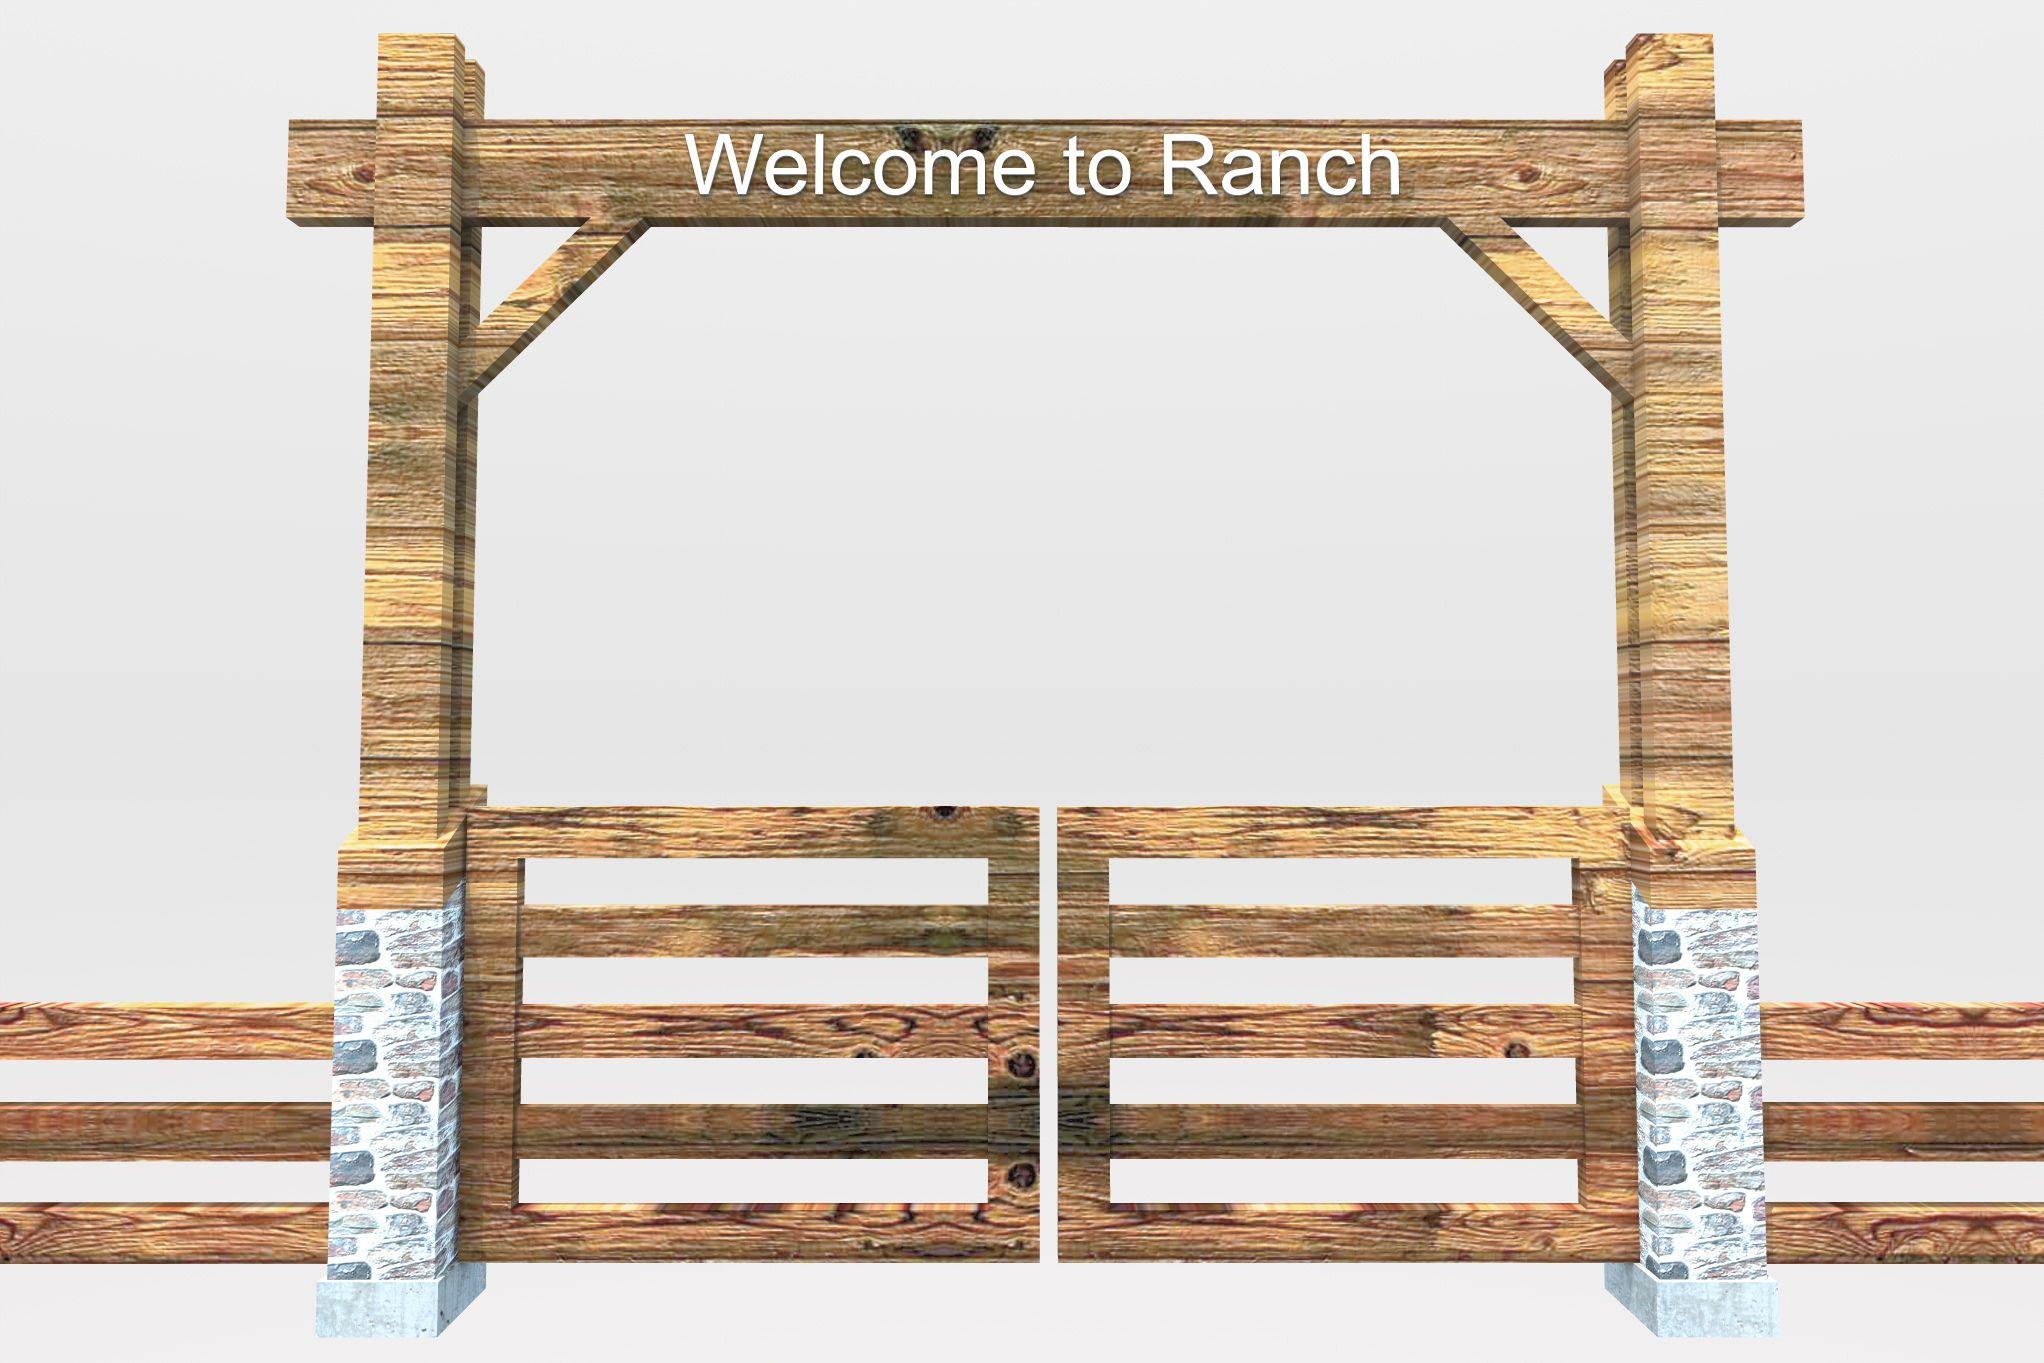 Pix For > Ranch Gate Clipart.